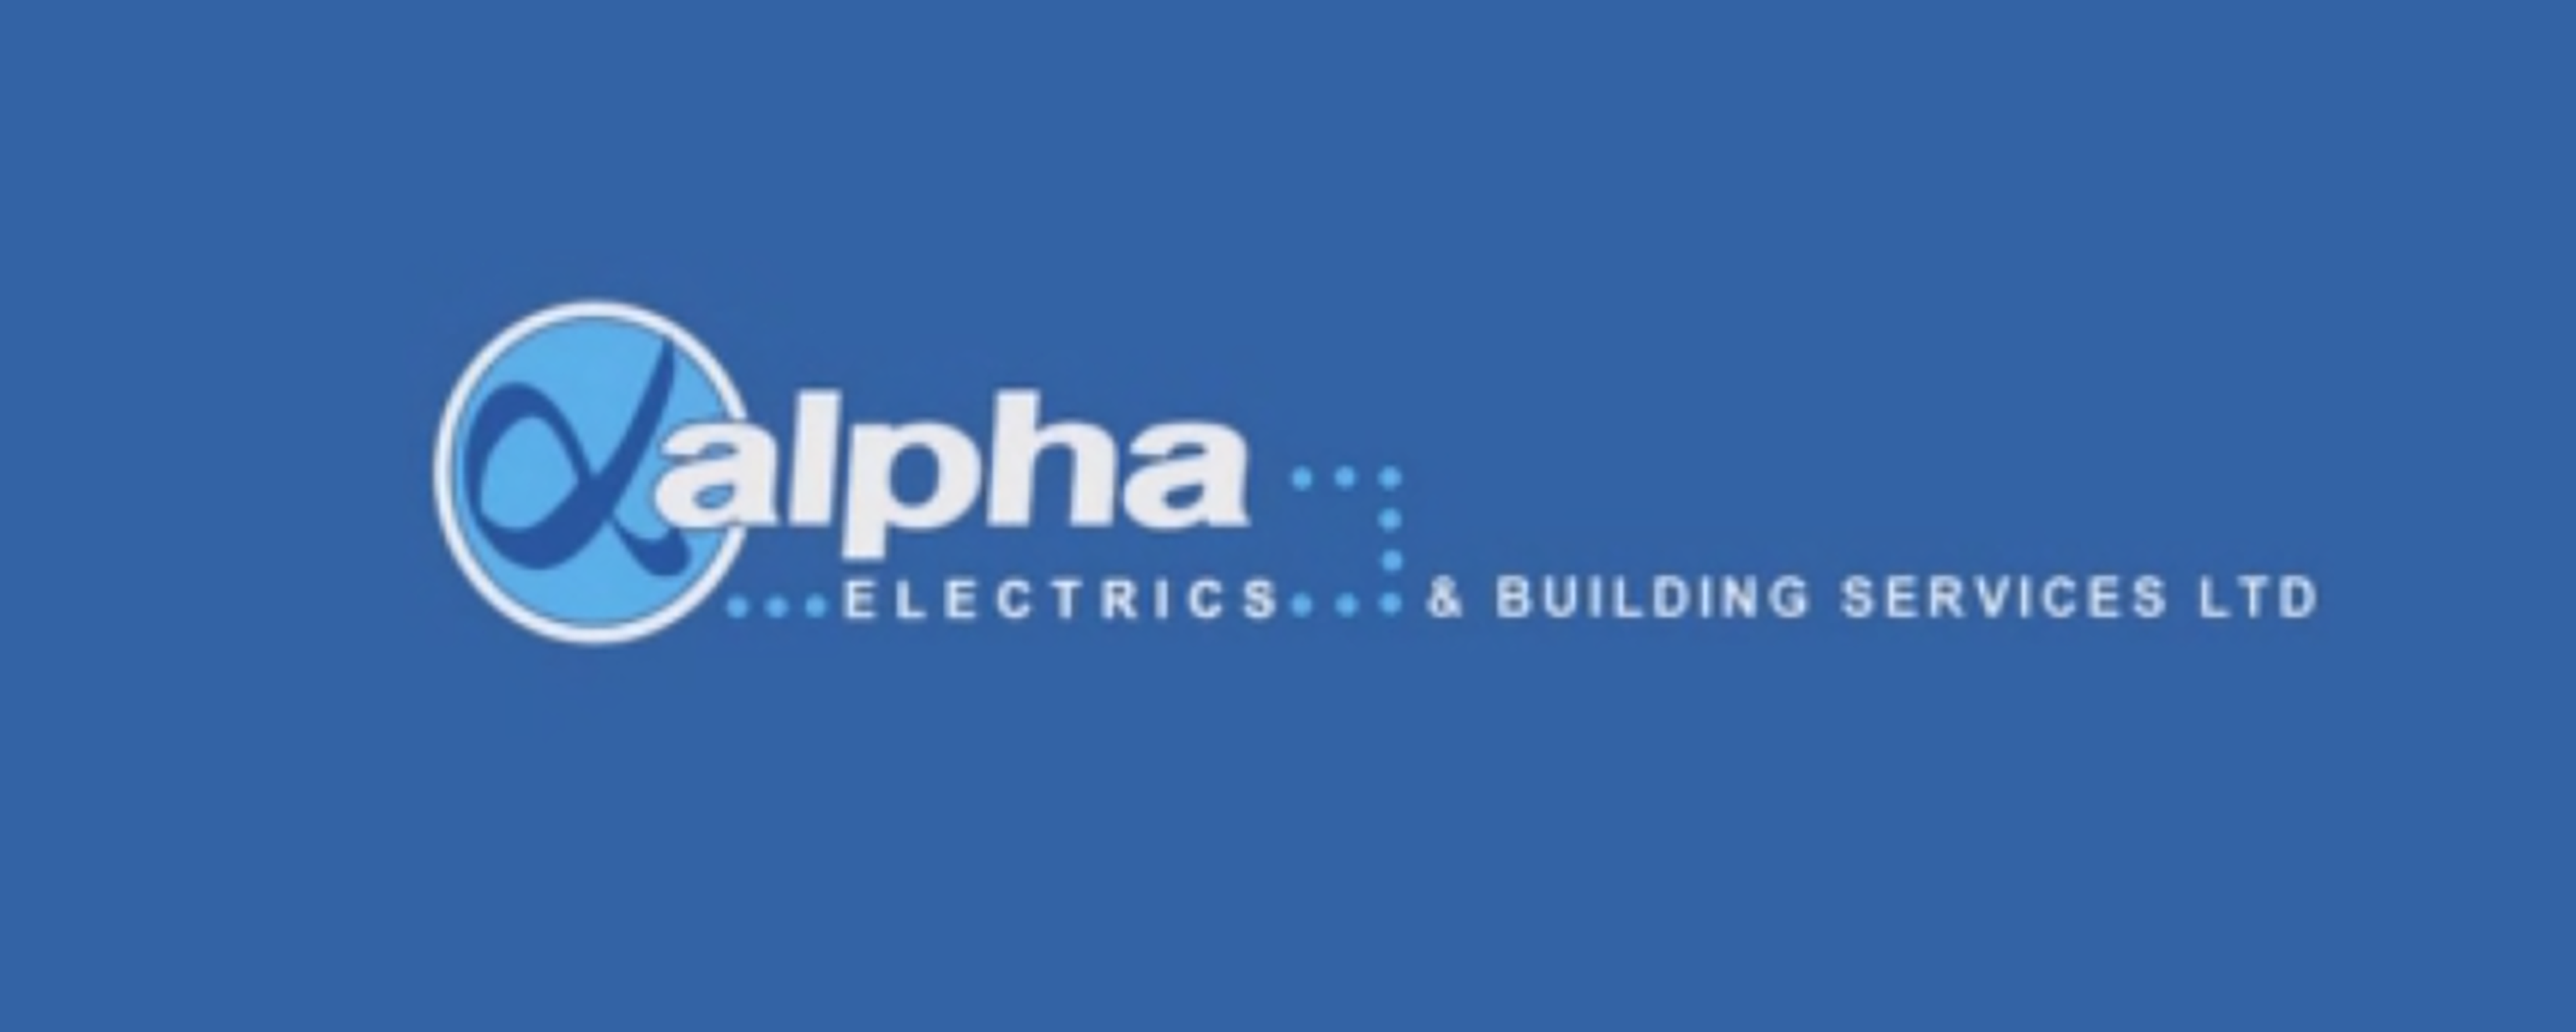 ALPHA ELECTRICS AND BUILDING